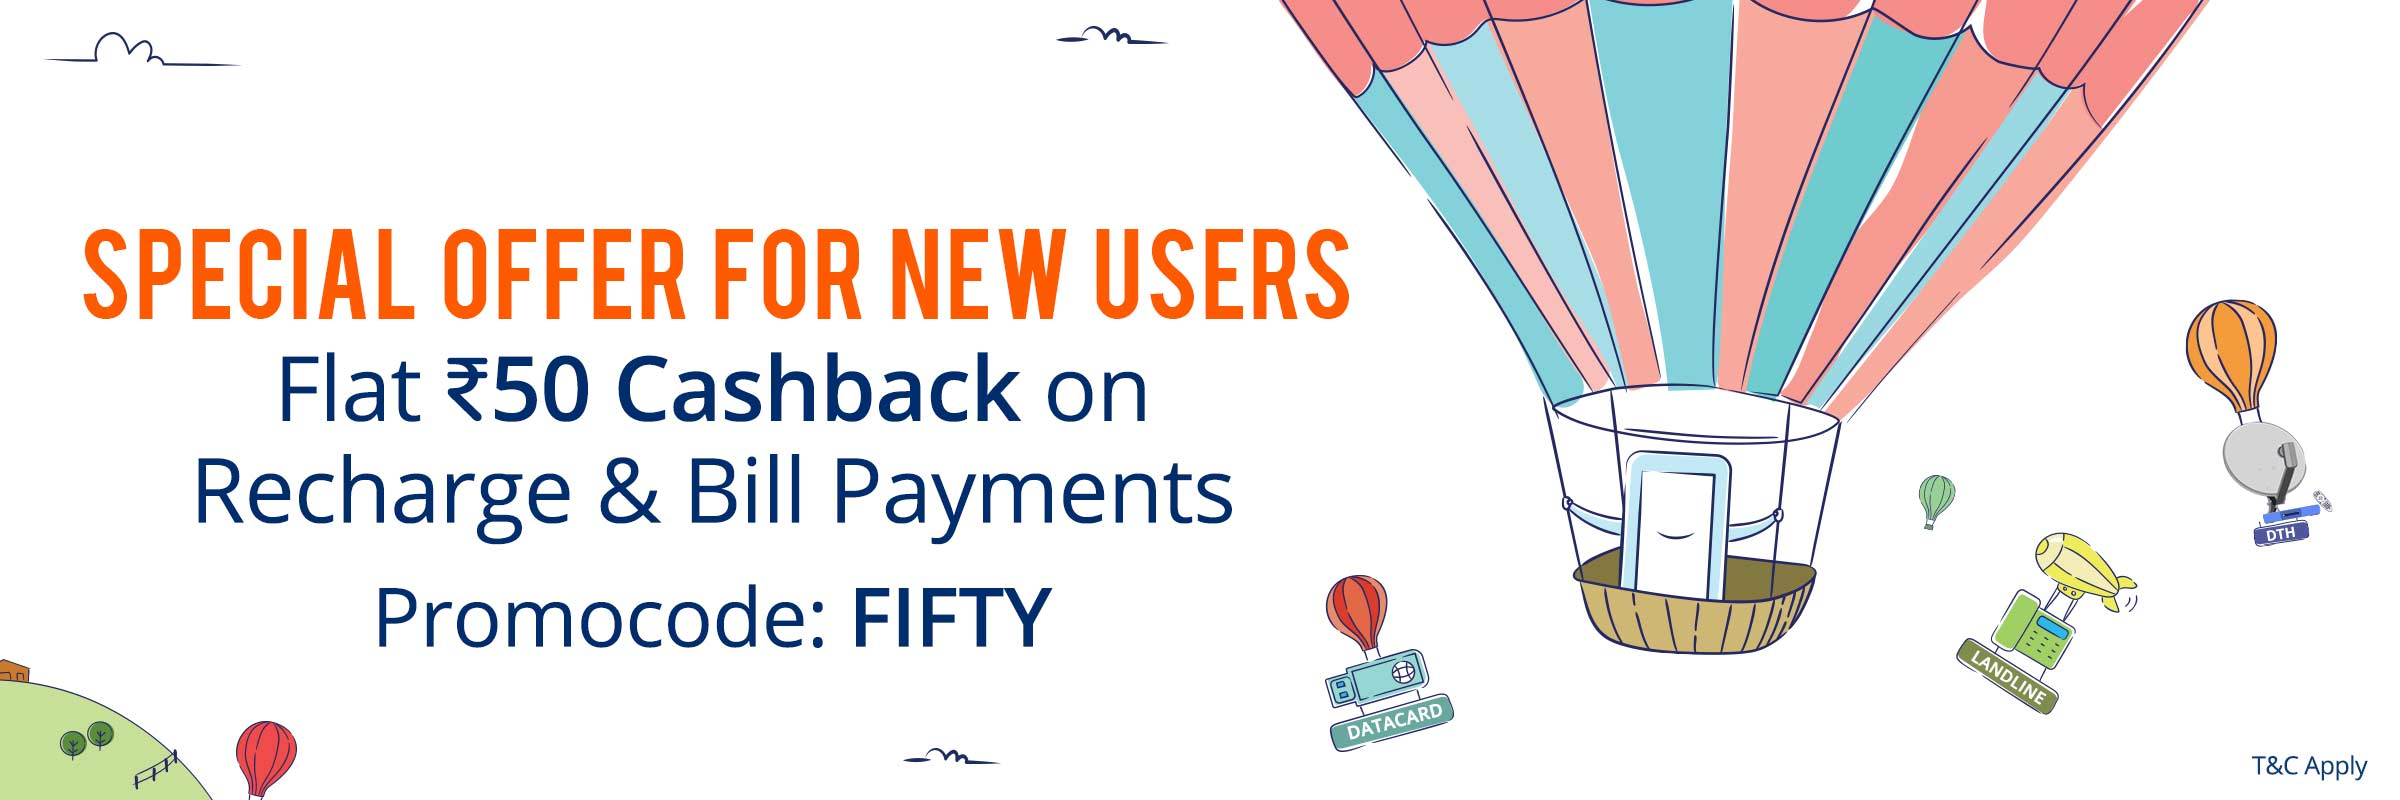 Landing Page - [AllUsers]Paytm Fifty50 Offer : get Rs.50 cashback On Recharge Of Rs.50[new users]